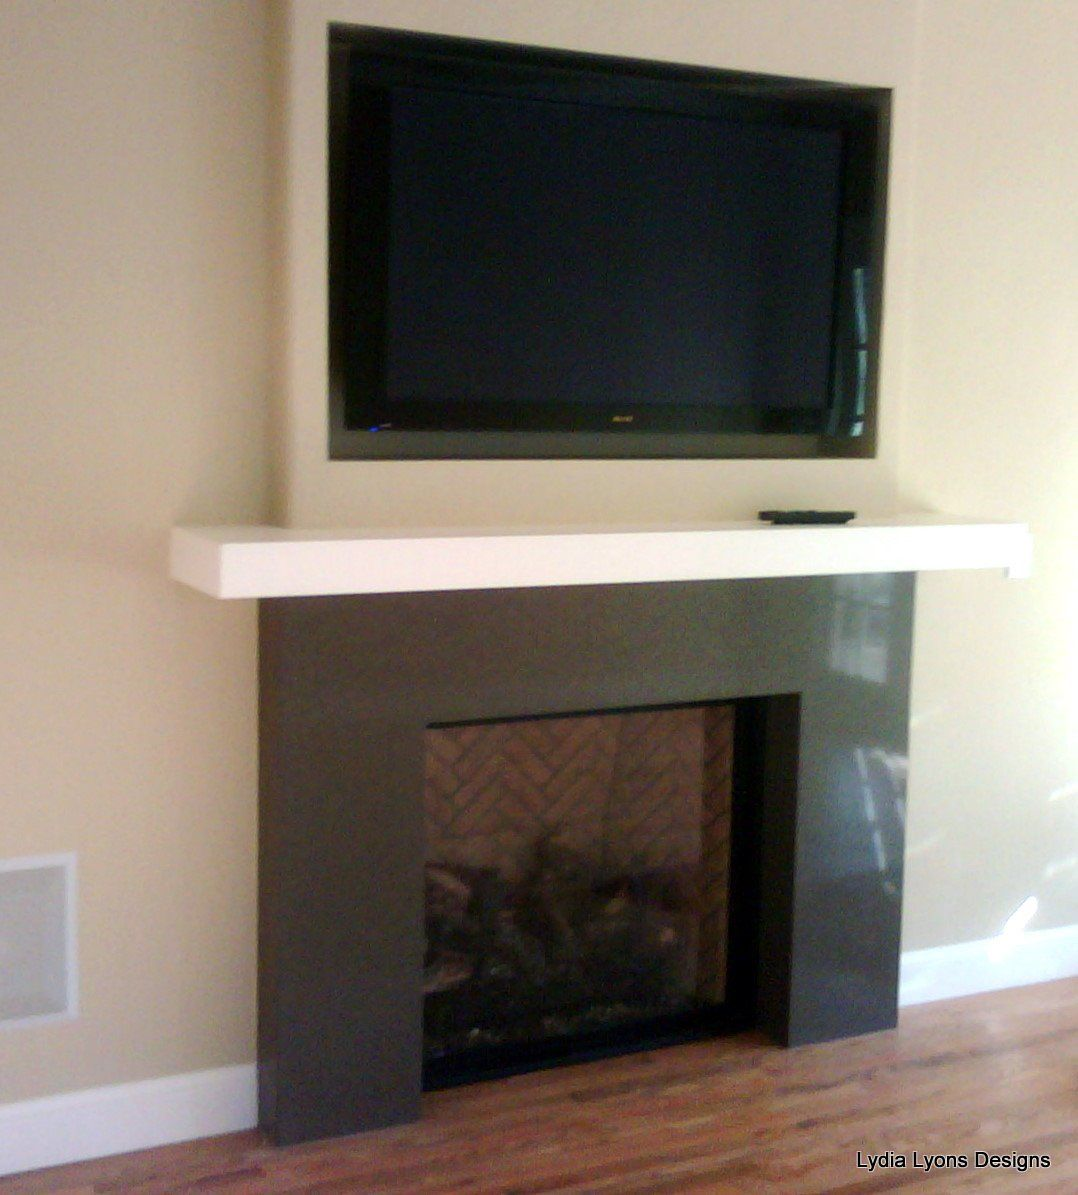 Recessed tv over fireplace | Basement Renovation ...